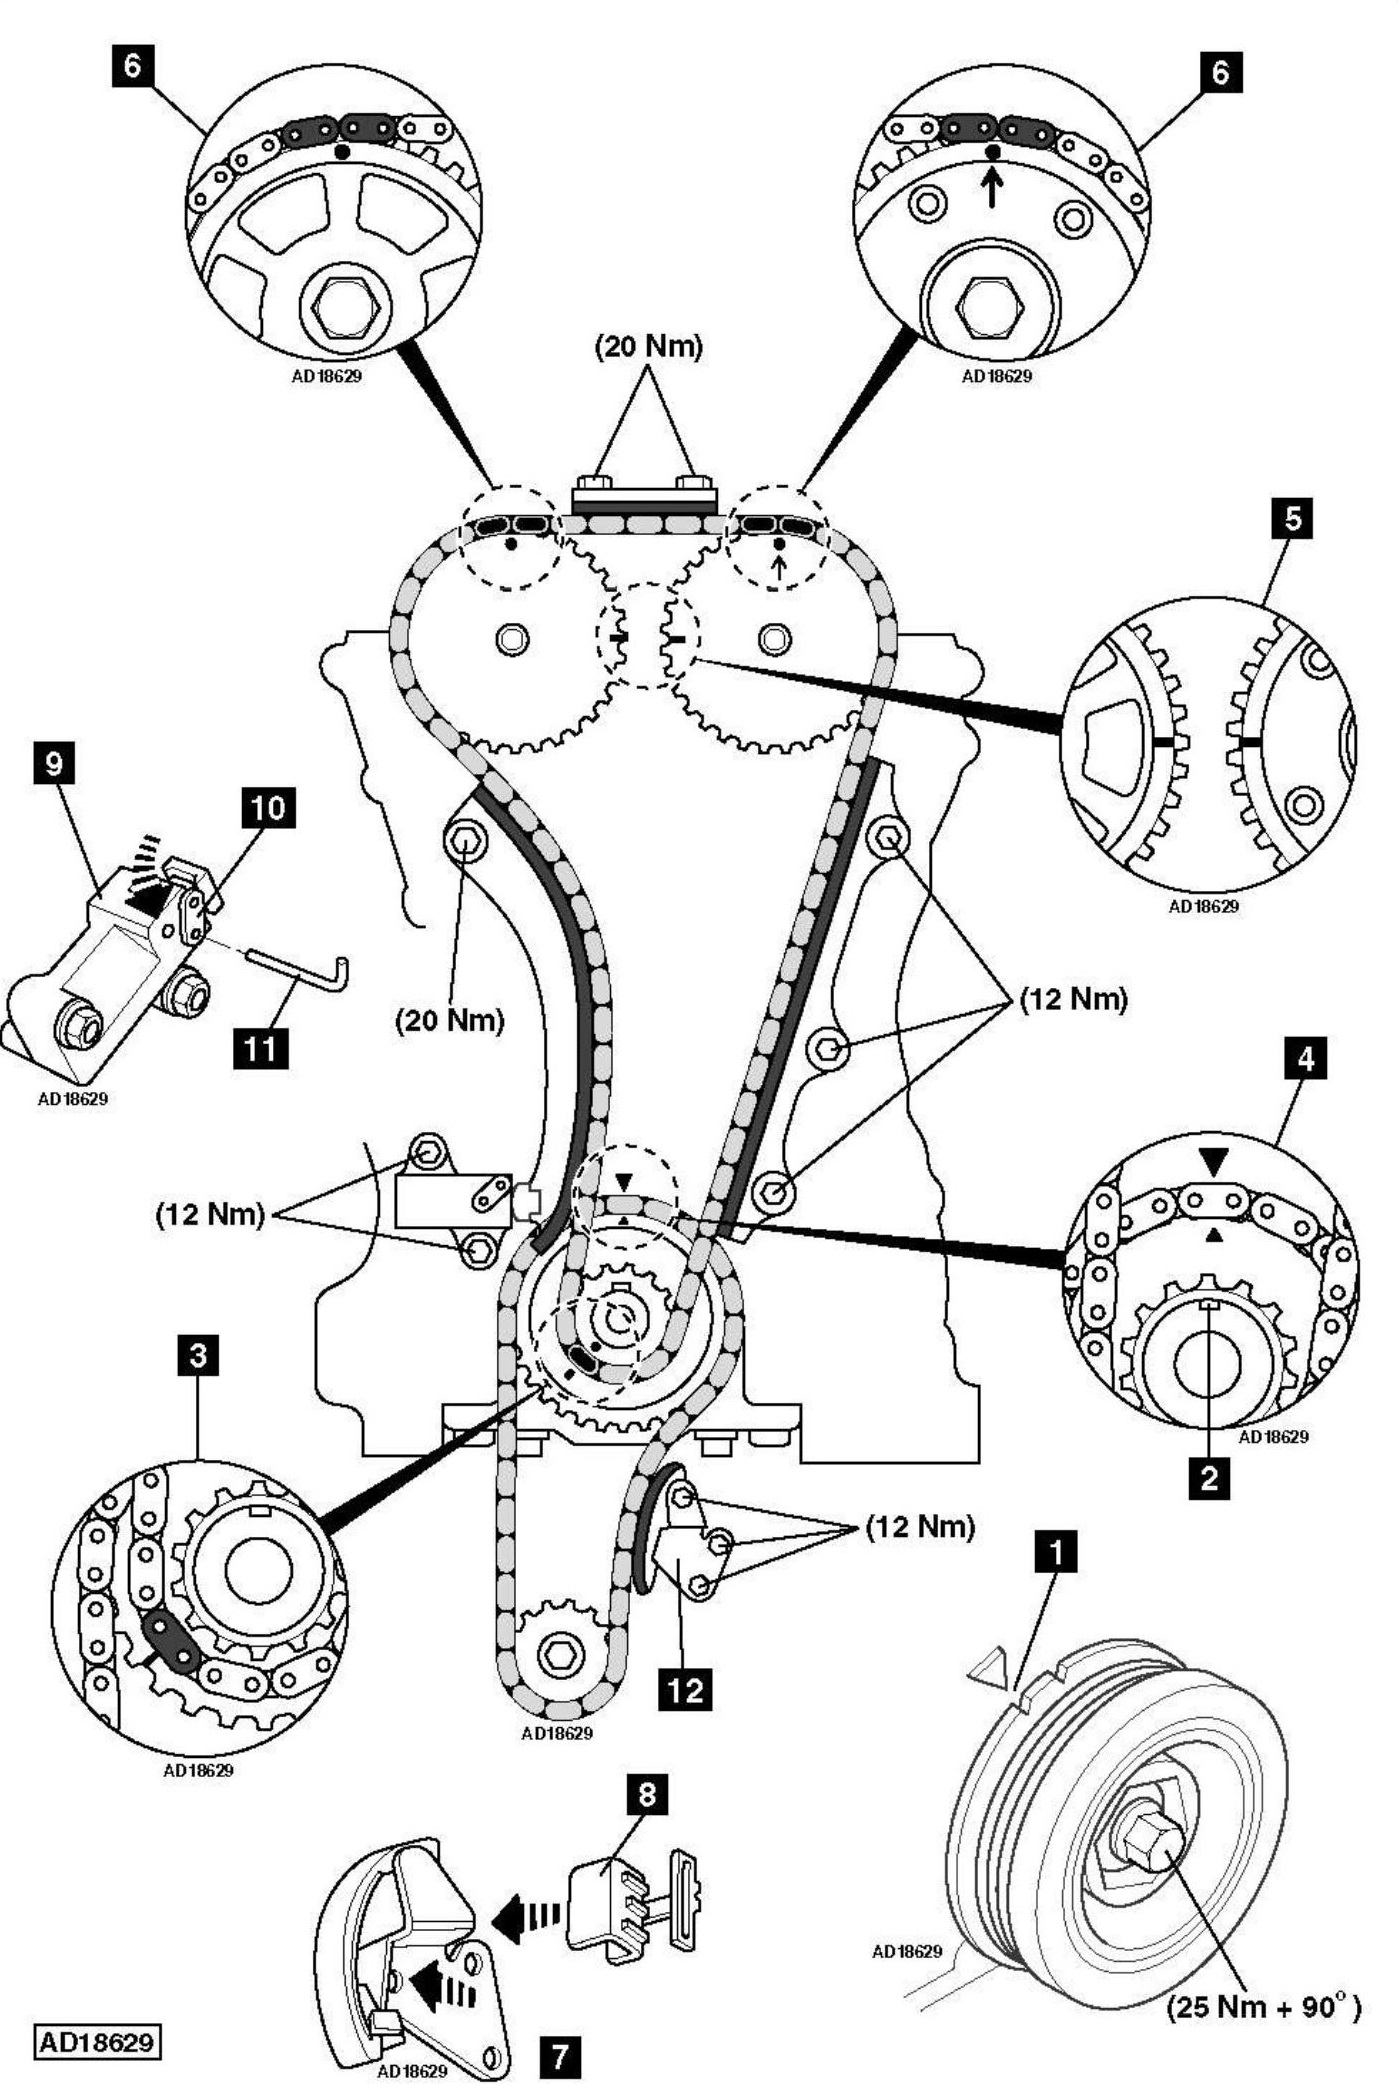 1991 Honda Civic Ignition Switch Wiring Diagram as well 2007 Honda Civic Transmission Control Module also P 0900c1528005f86c further Honda Element Speaker Wiring Diagram together with 4vvh7 Honda Accord Ex 2004 Honda Accord Changing. on 1990 honda accord wiring harness diagram